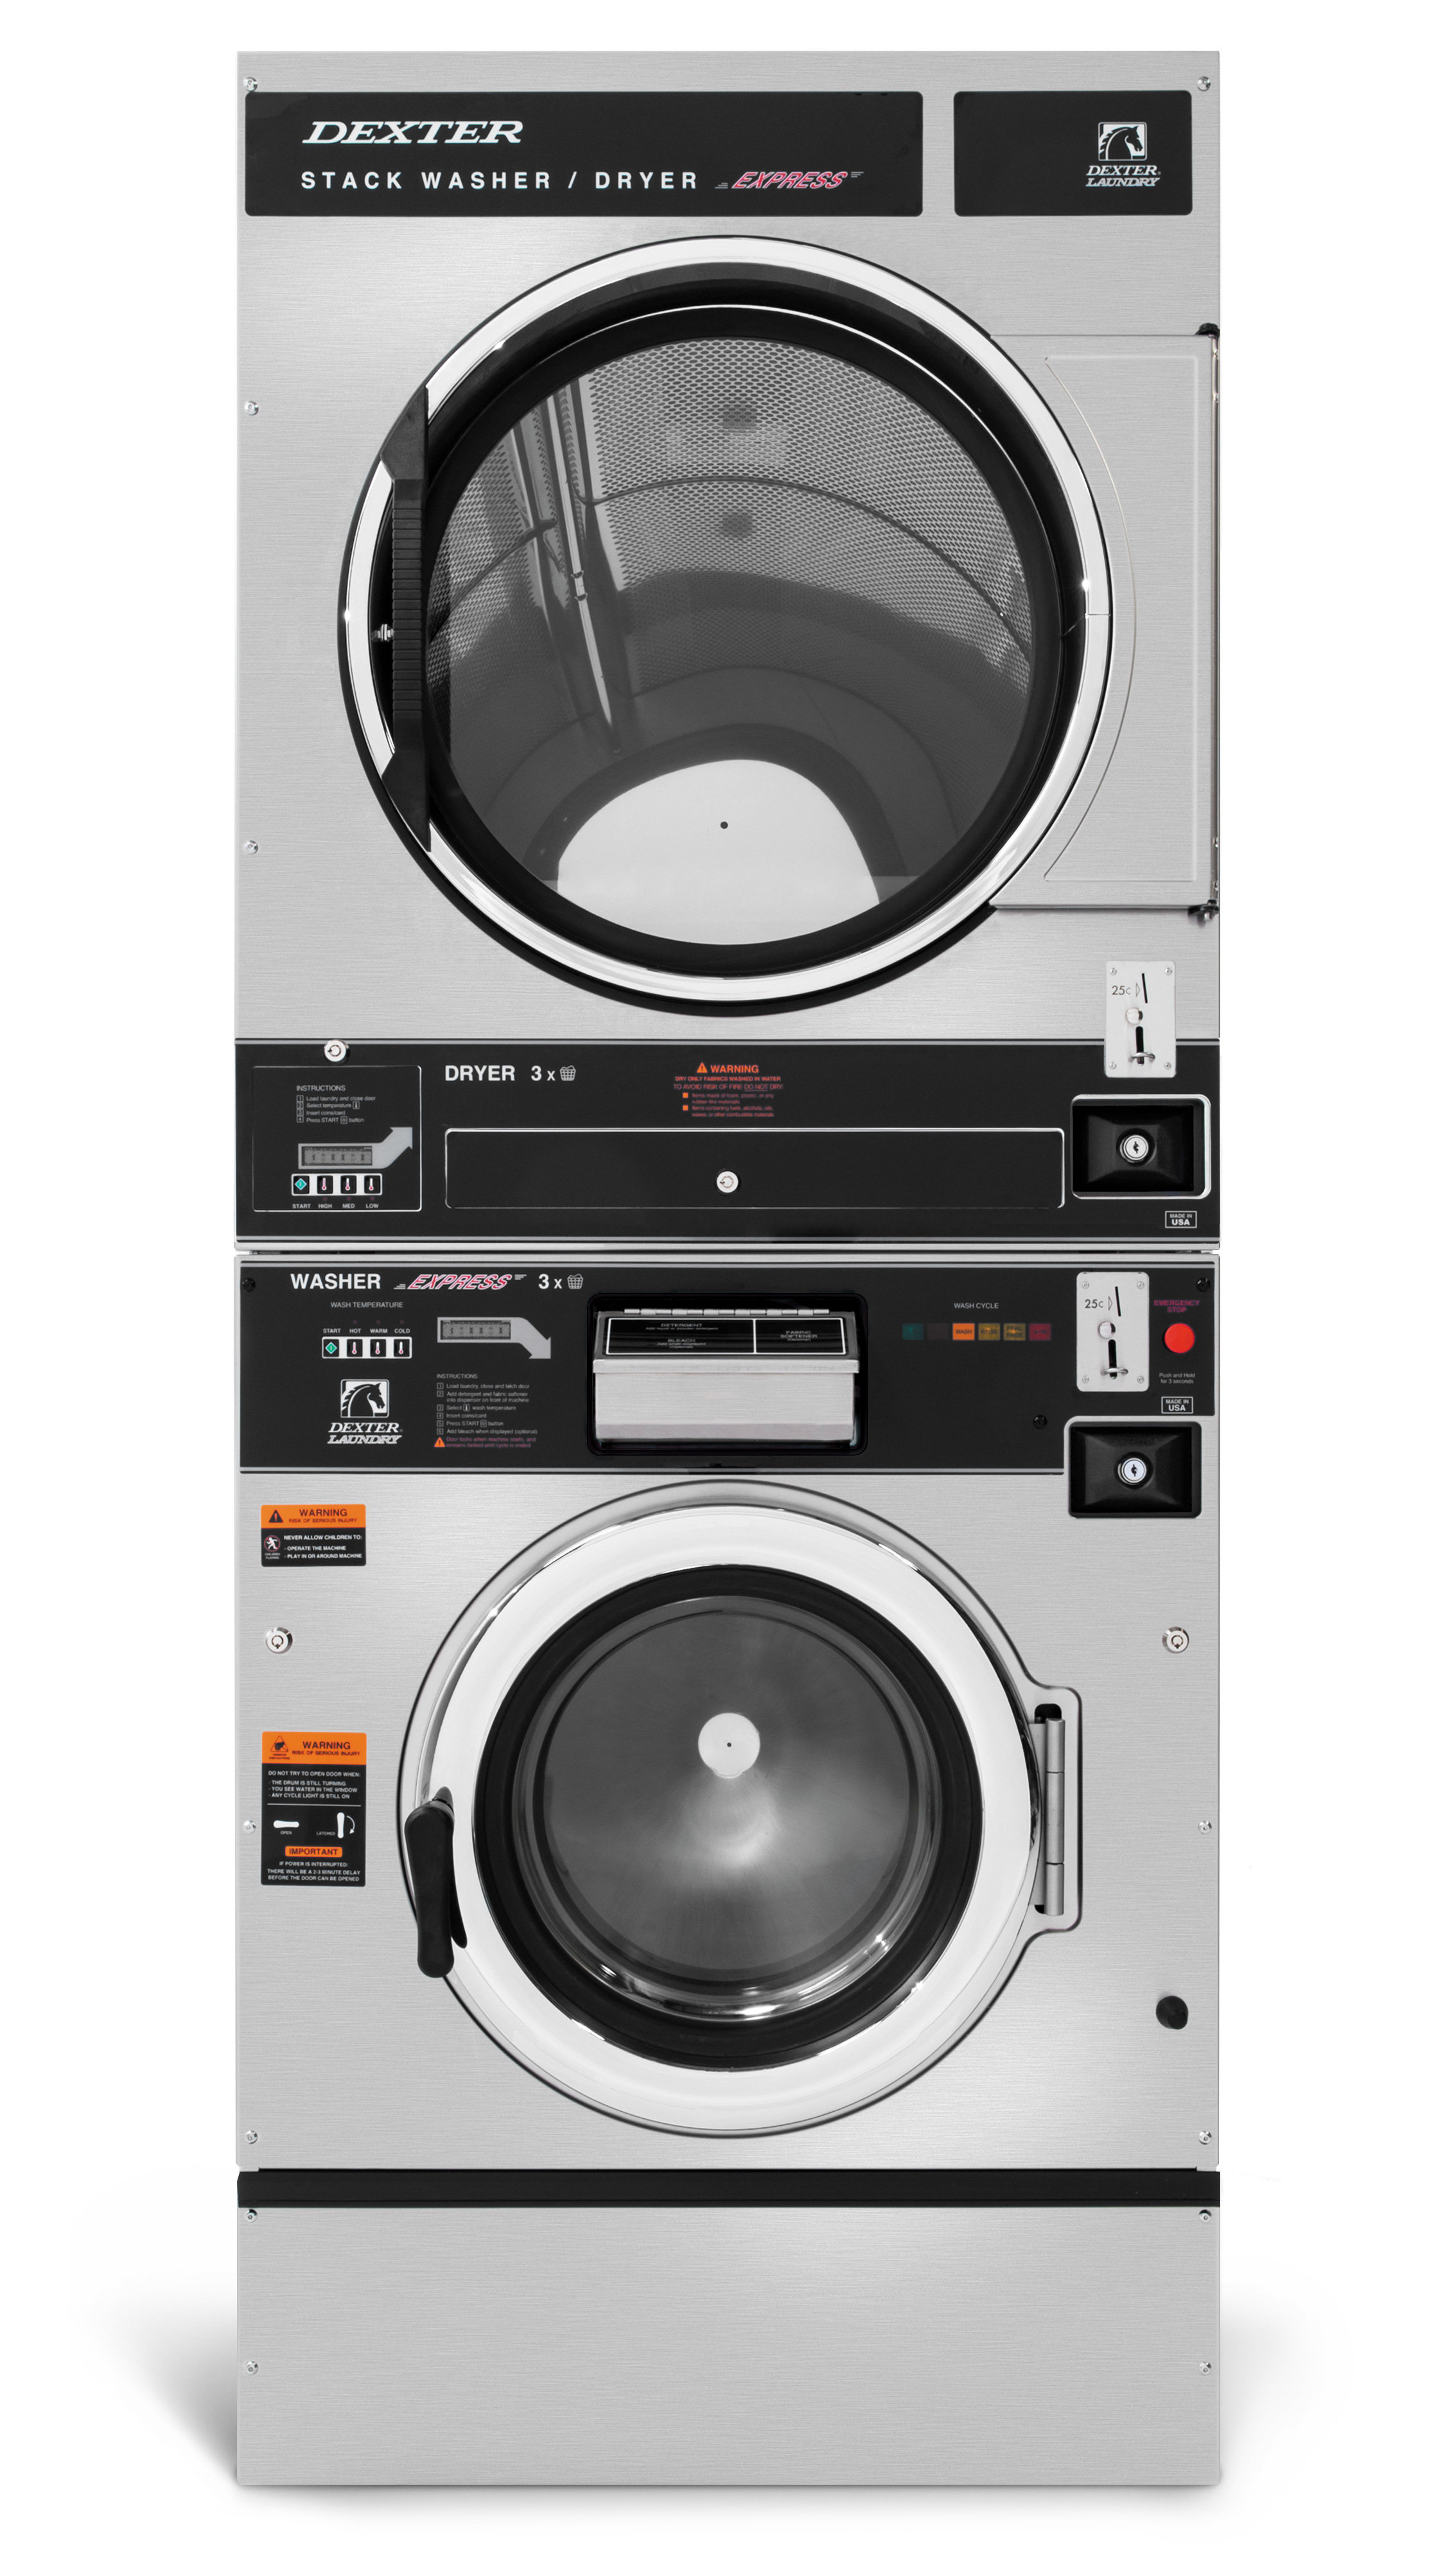 Dexter T-450 Washer Dryer Stack C Series Product Image